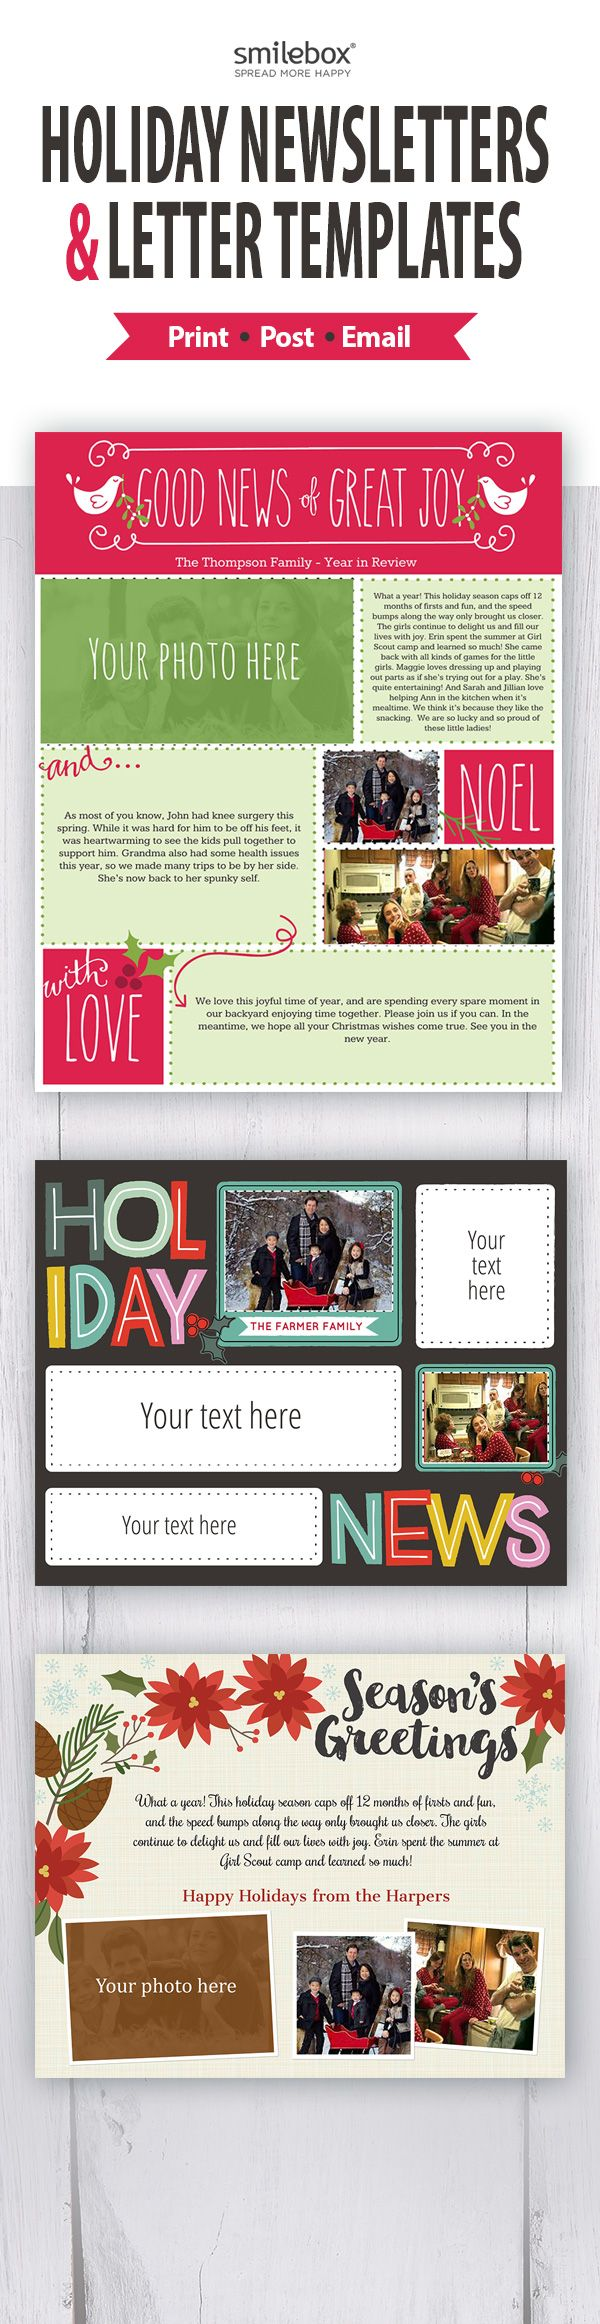 Best 25 newsletter ideas ideas on pinterest email for Christmas newsletter design ideas